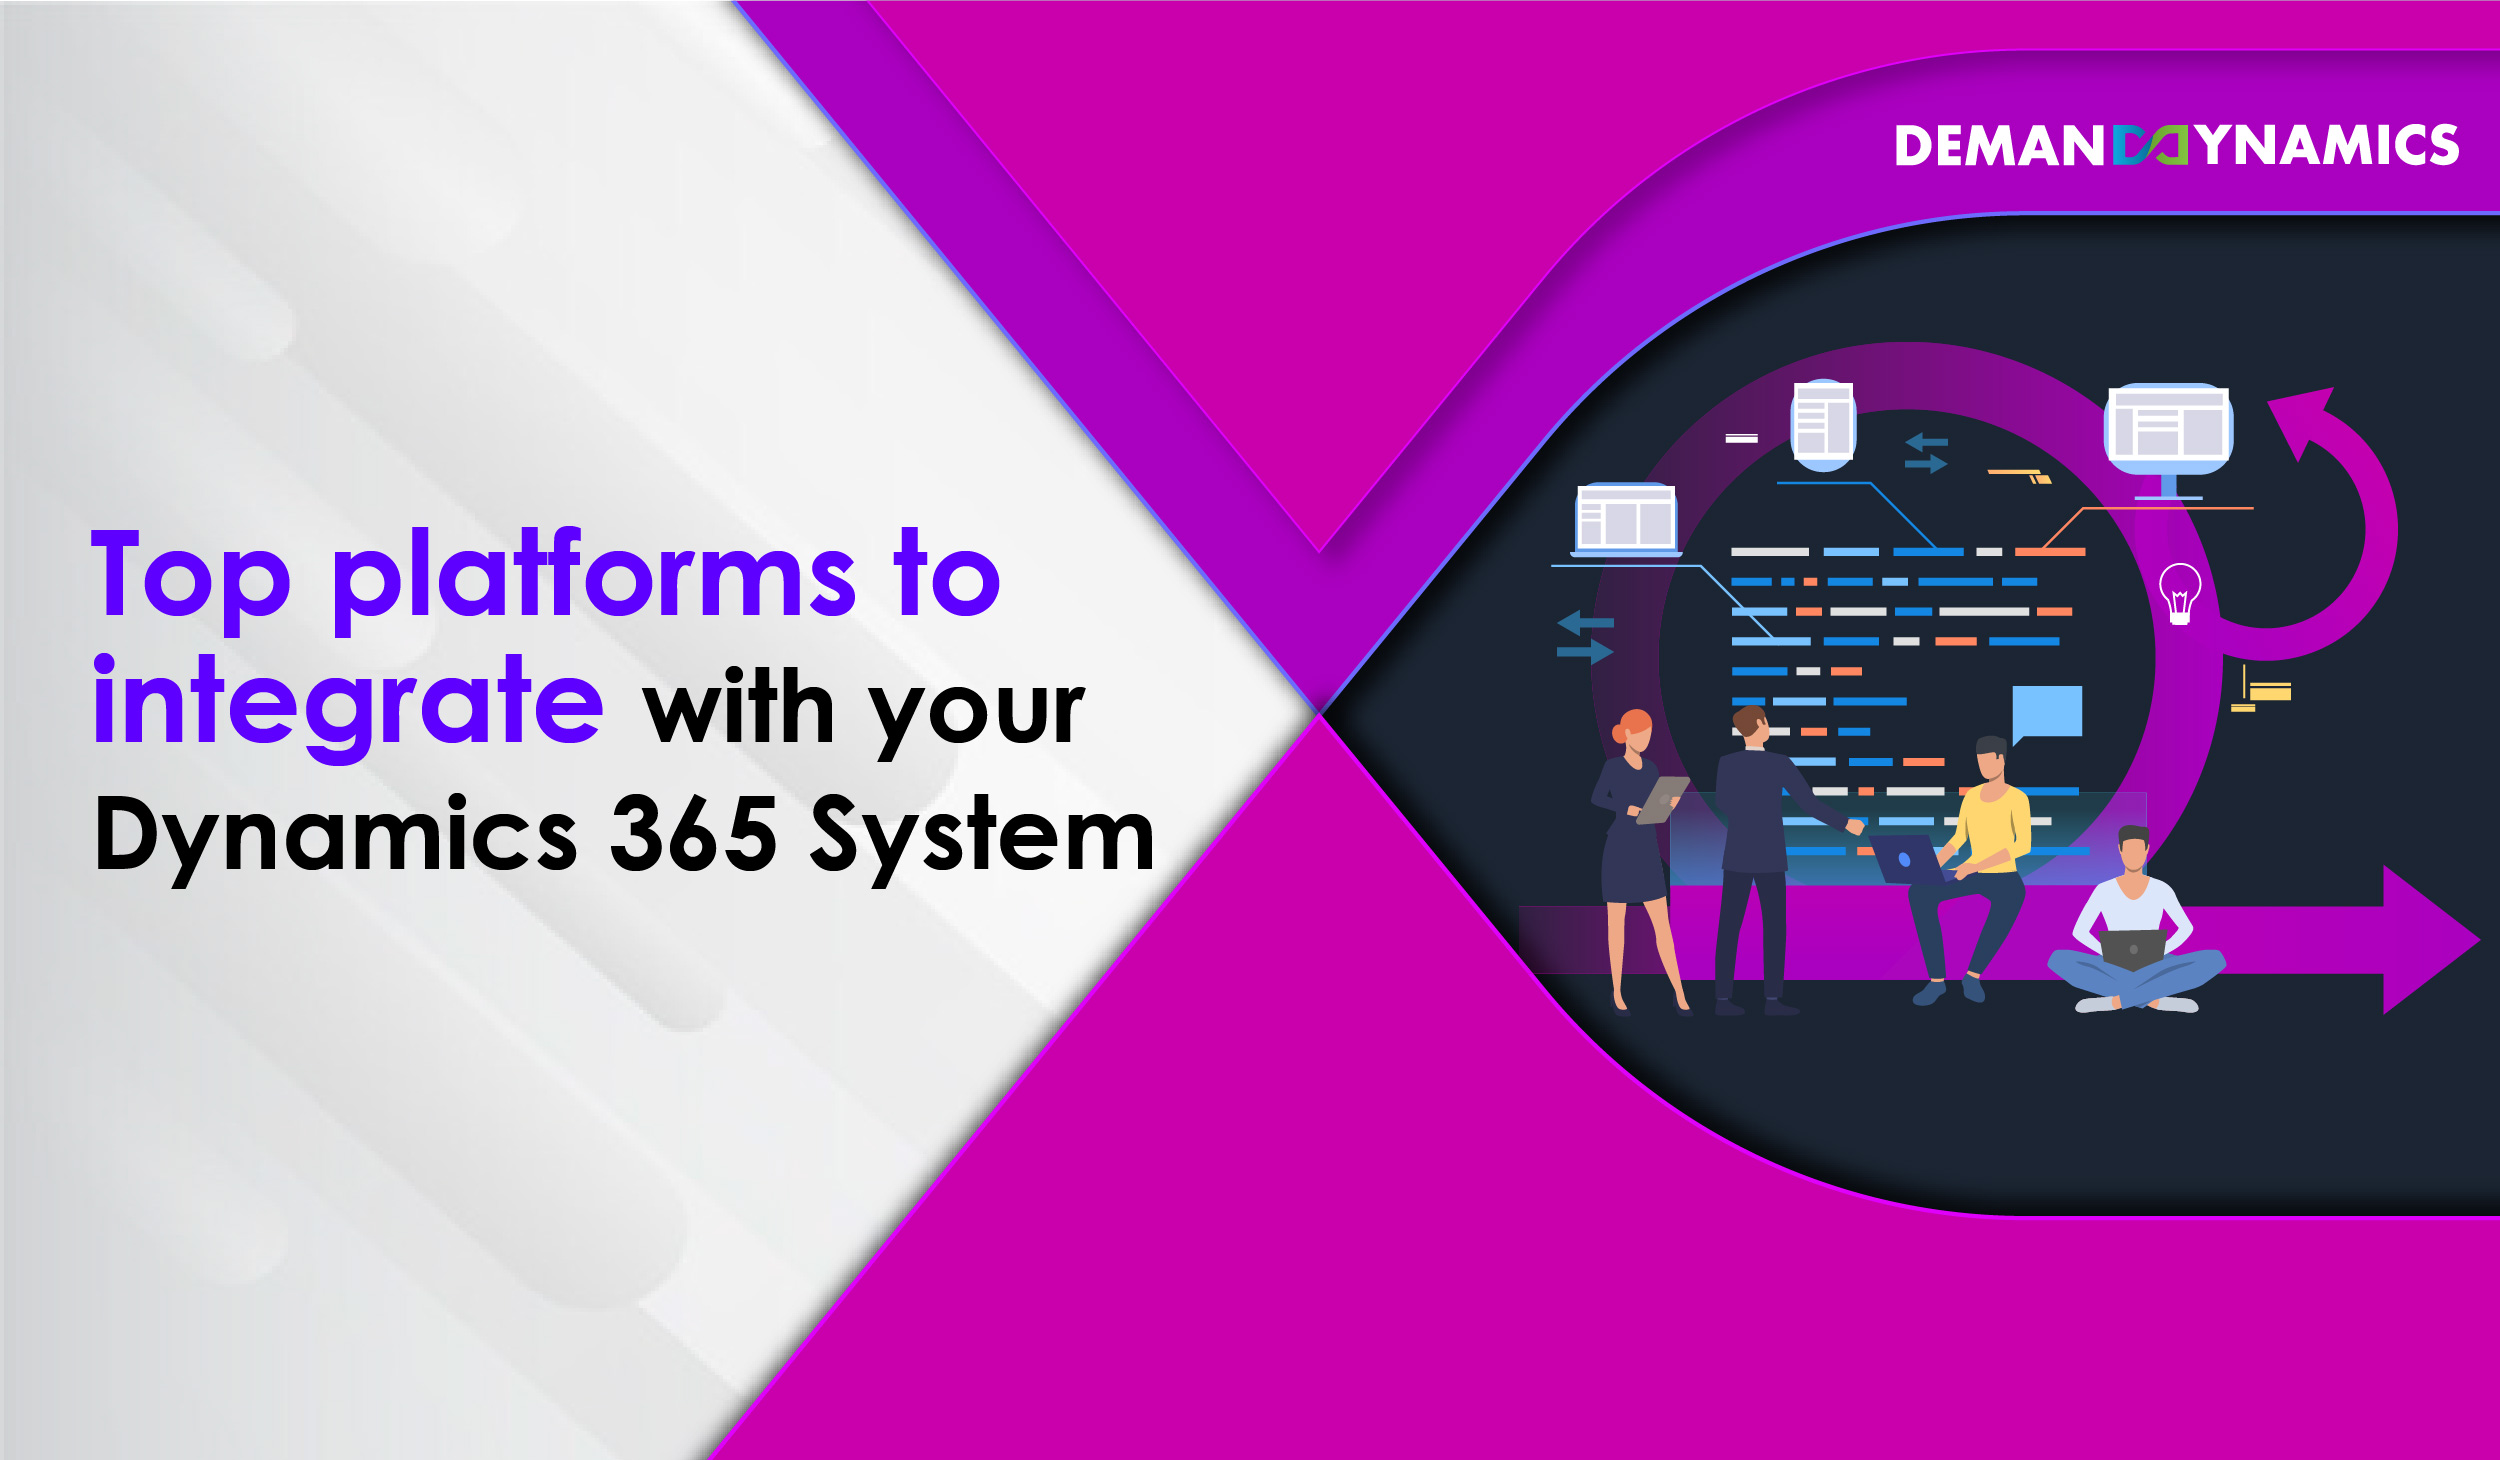 Top platforms to integrate with your Dynamics 365 System